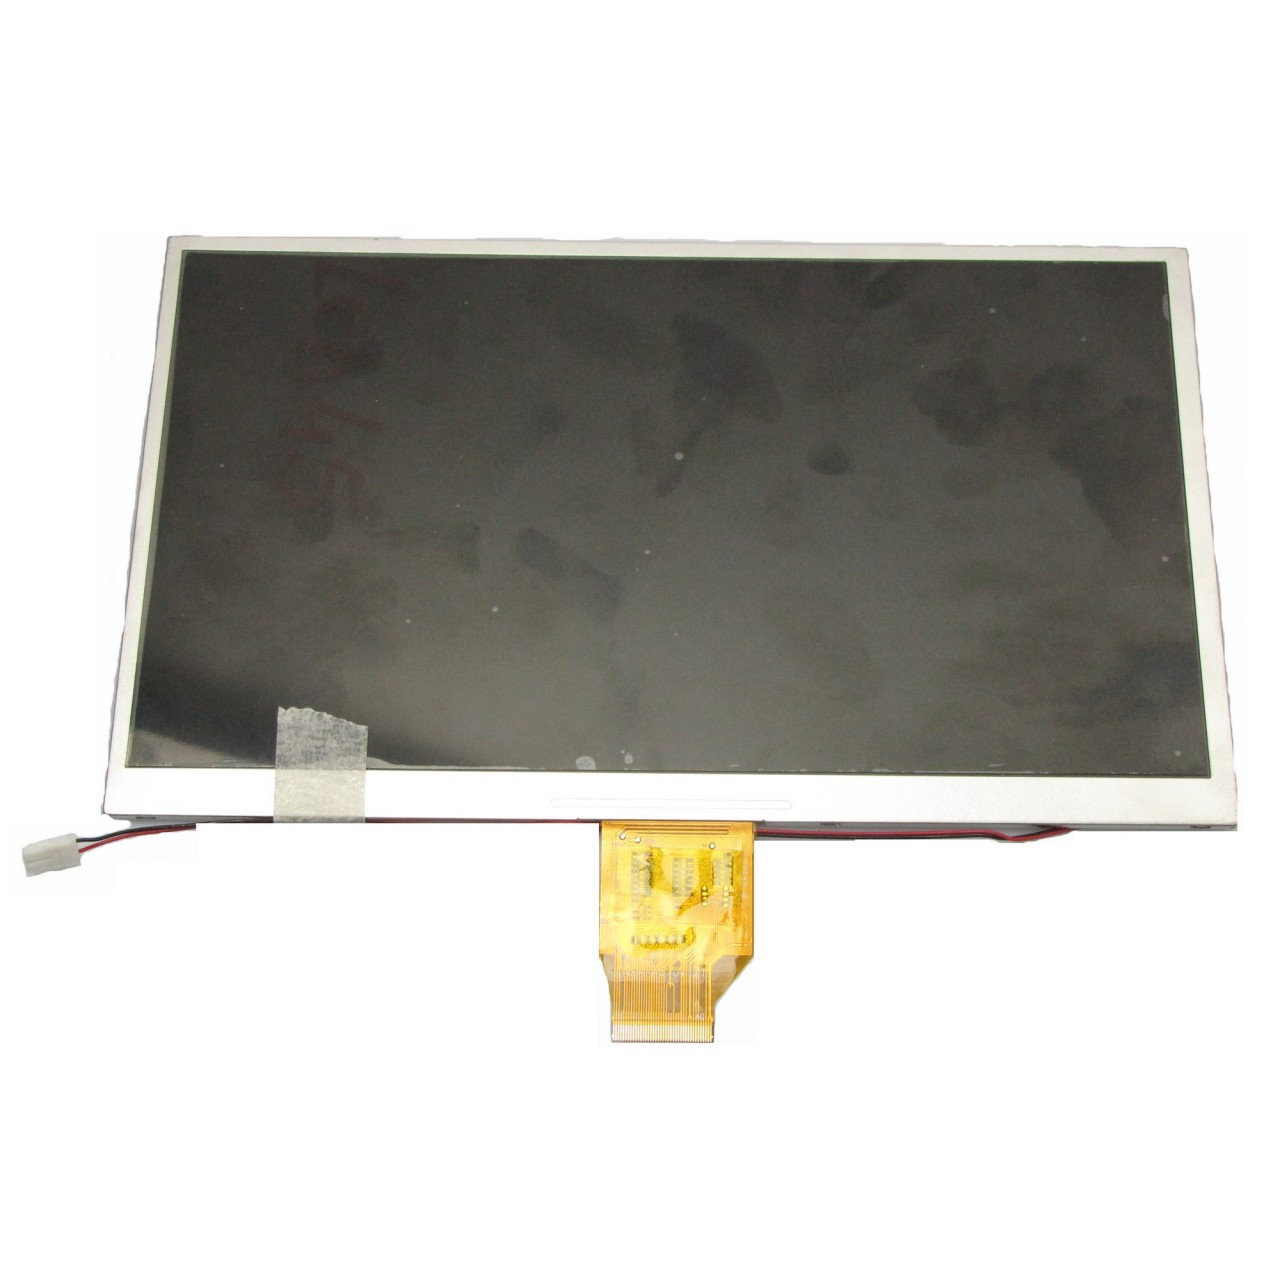 Display Serioux Surya Fun SMO10DC Ecran TN LCD Tableta ORIGINAL imagine powerlaptop.ro 2021